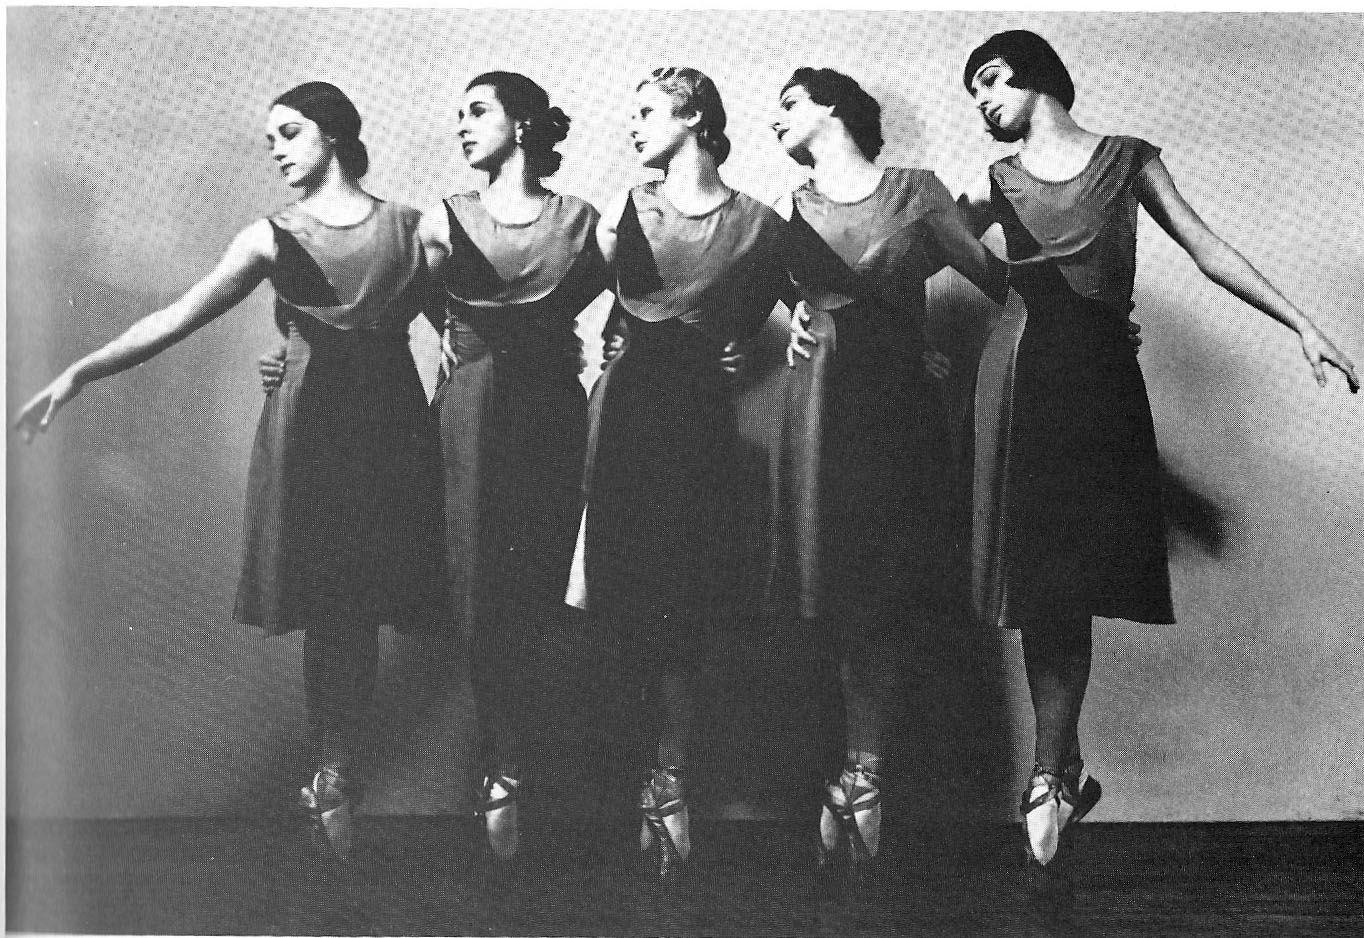 Balanchine's Serenade - early production